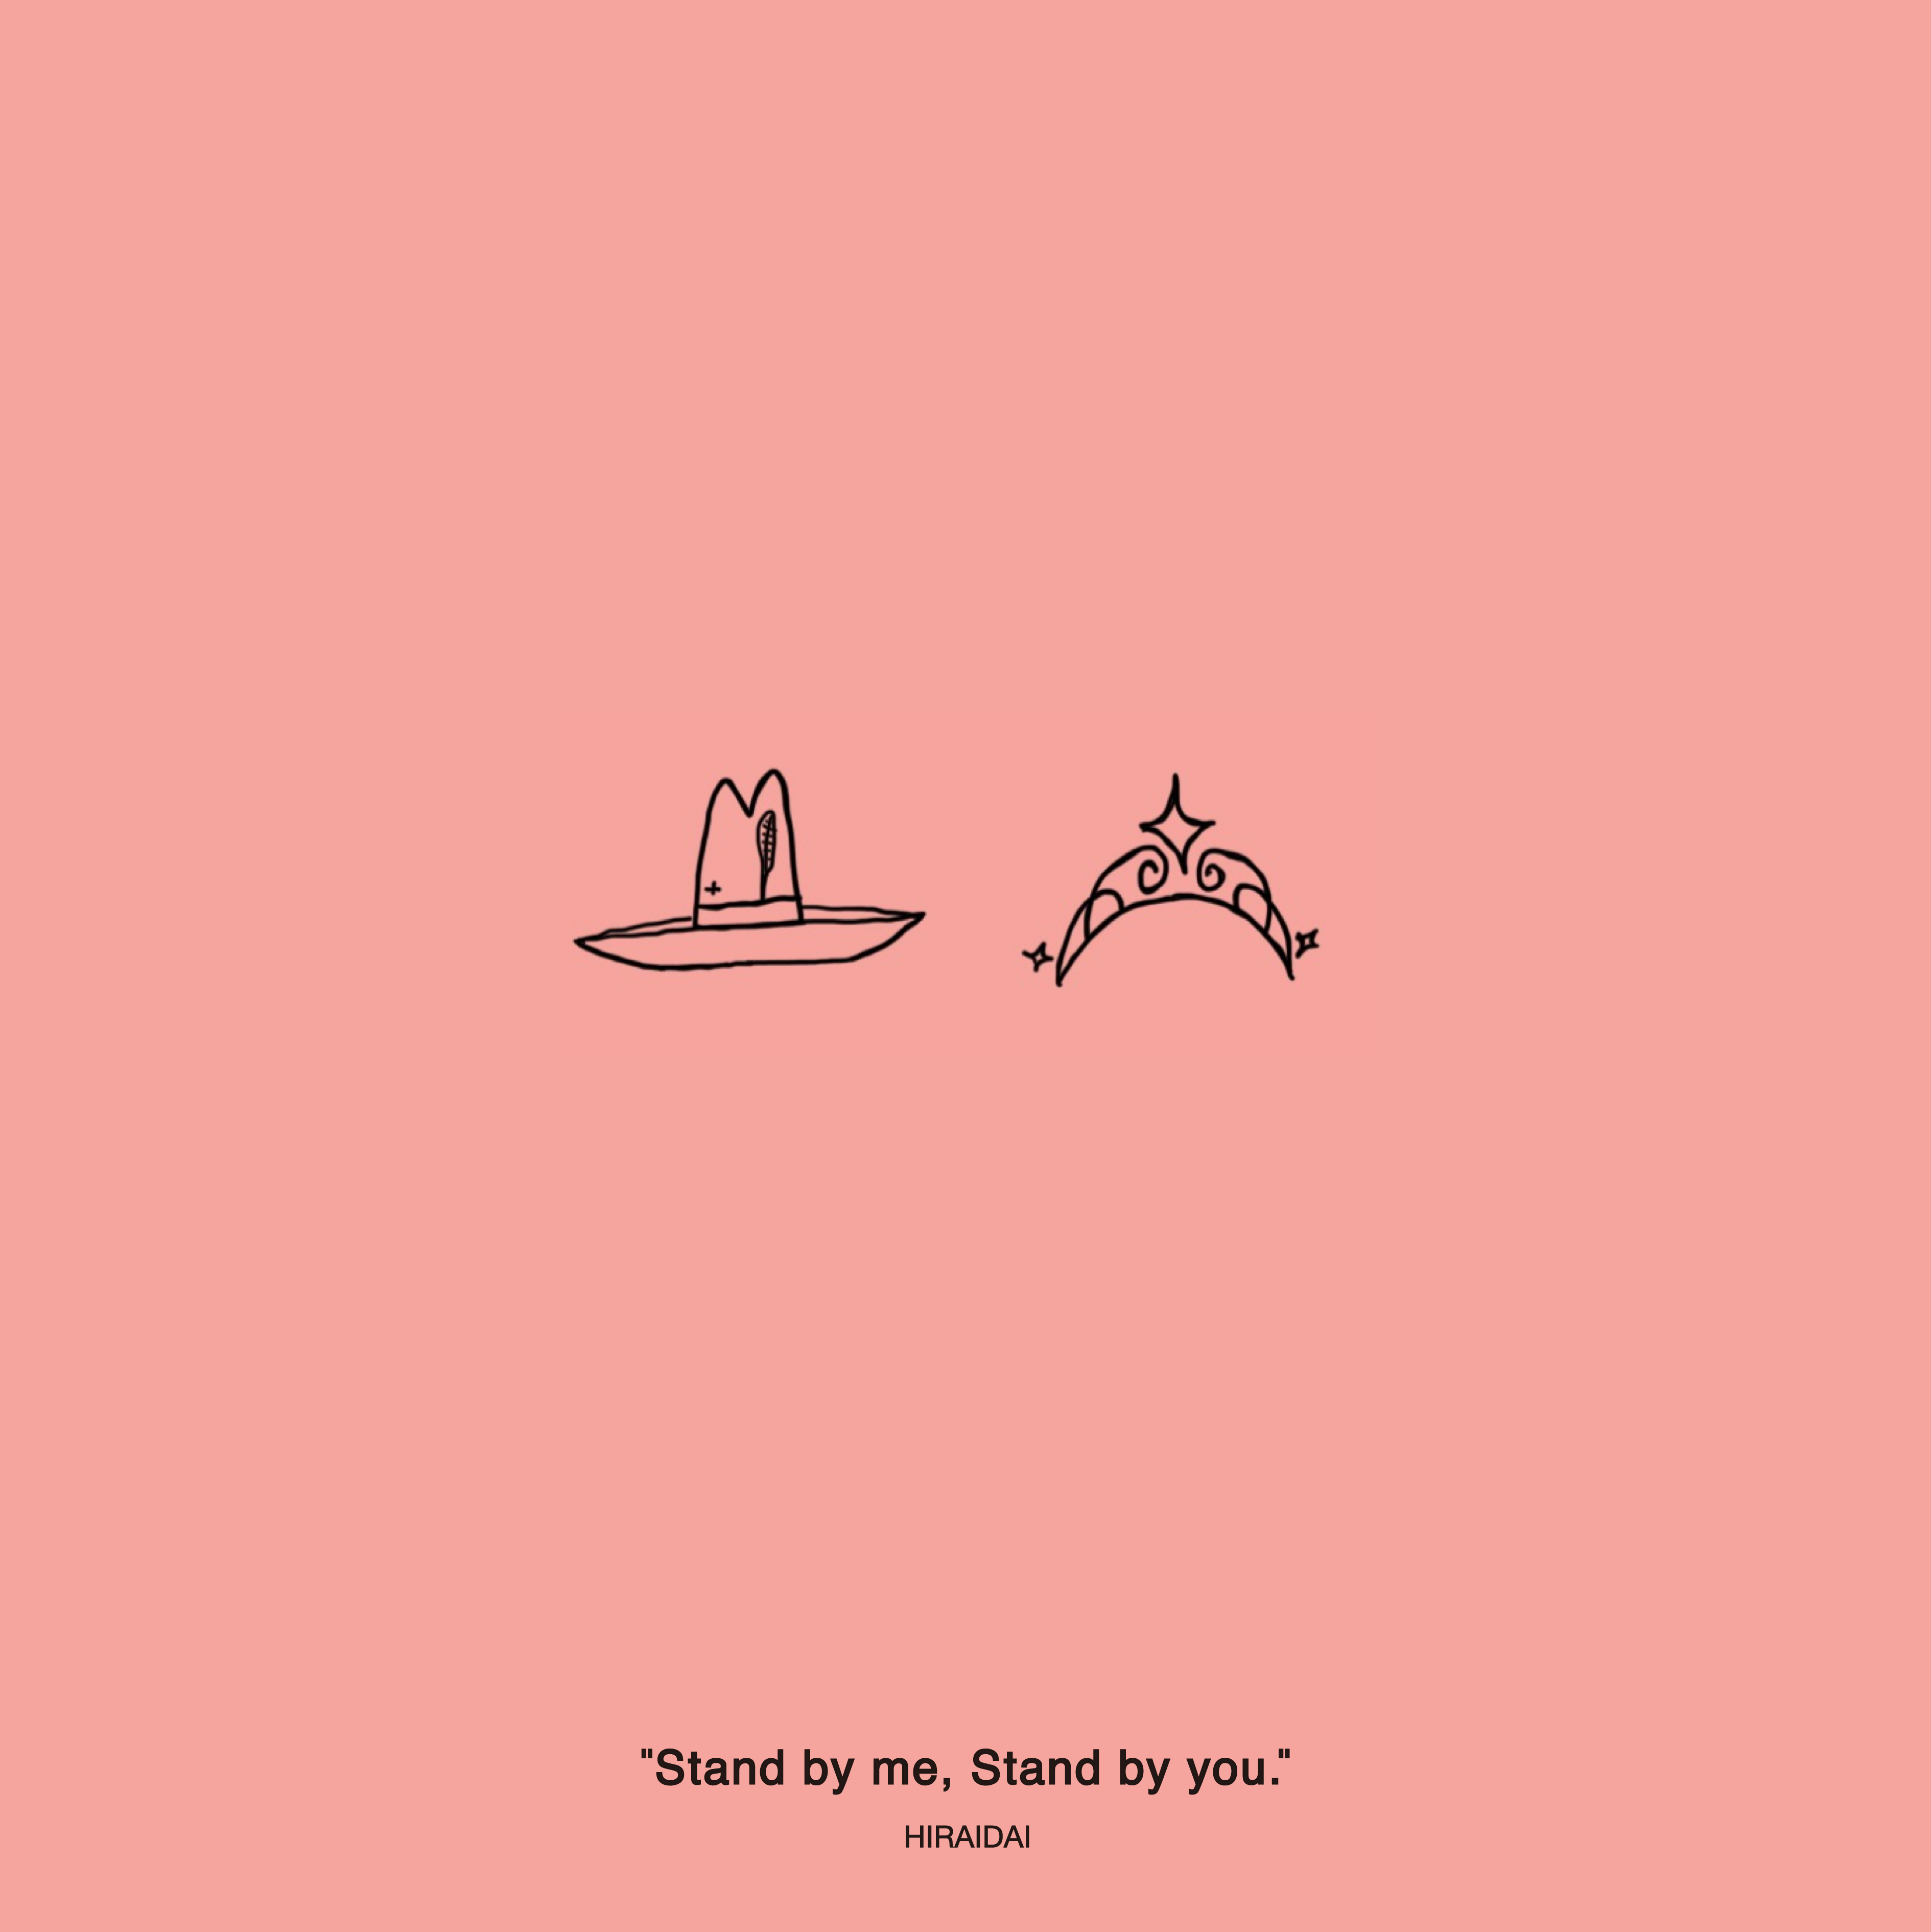 平井 大「Stand by me, Stand by you.」